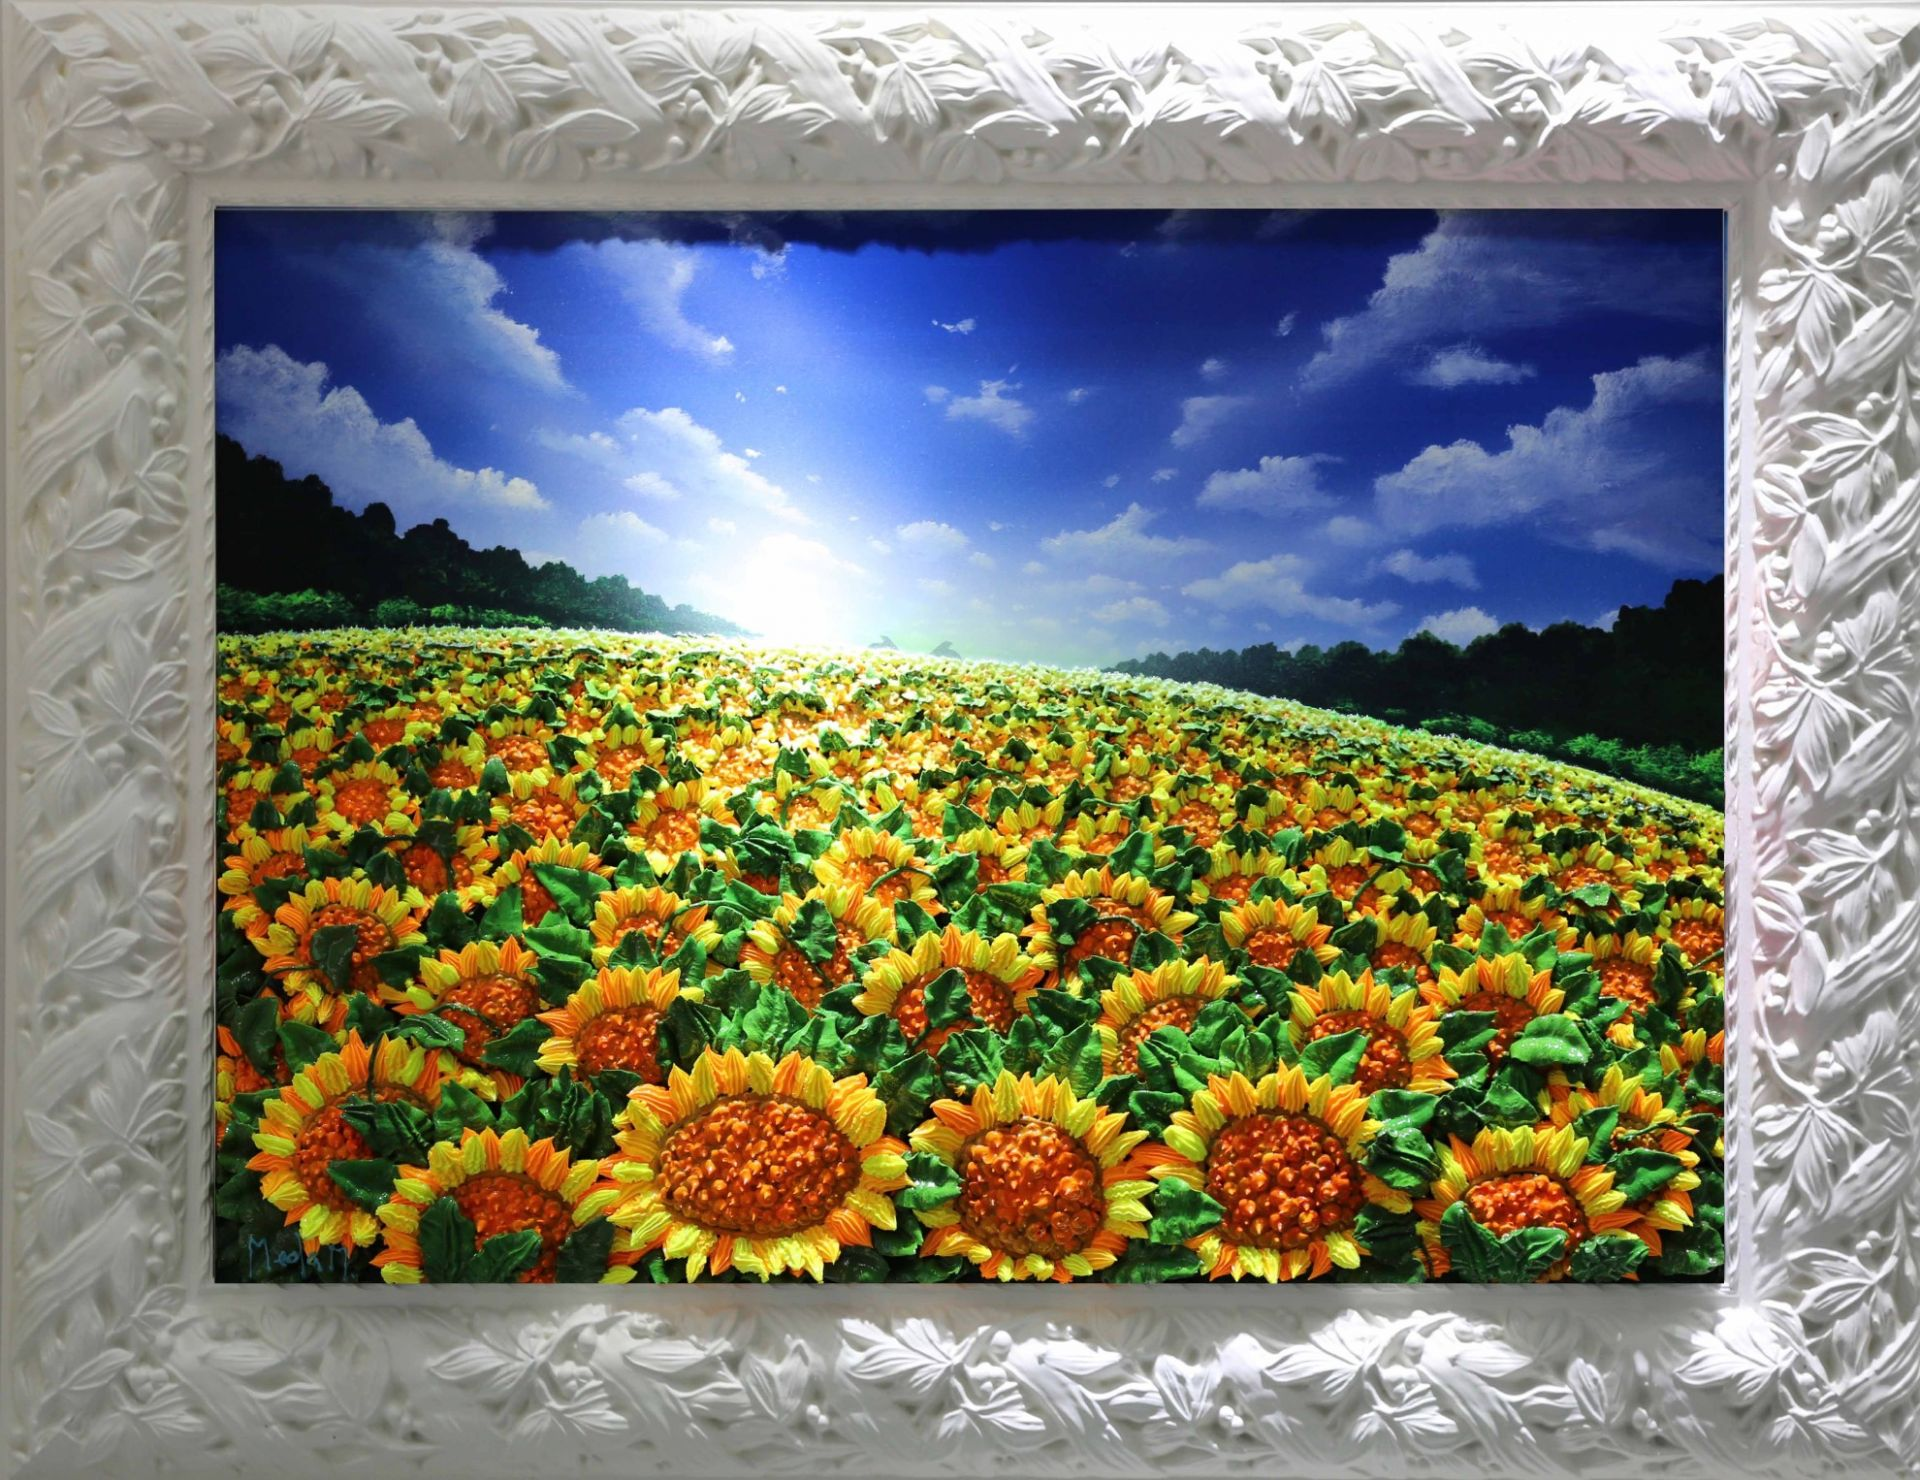 Massimo Meda (Sunflowers, framed cm88x68)